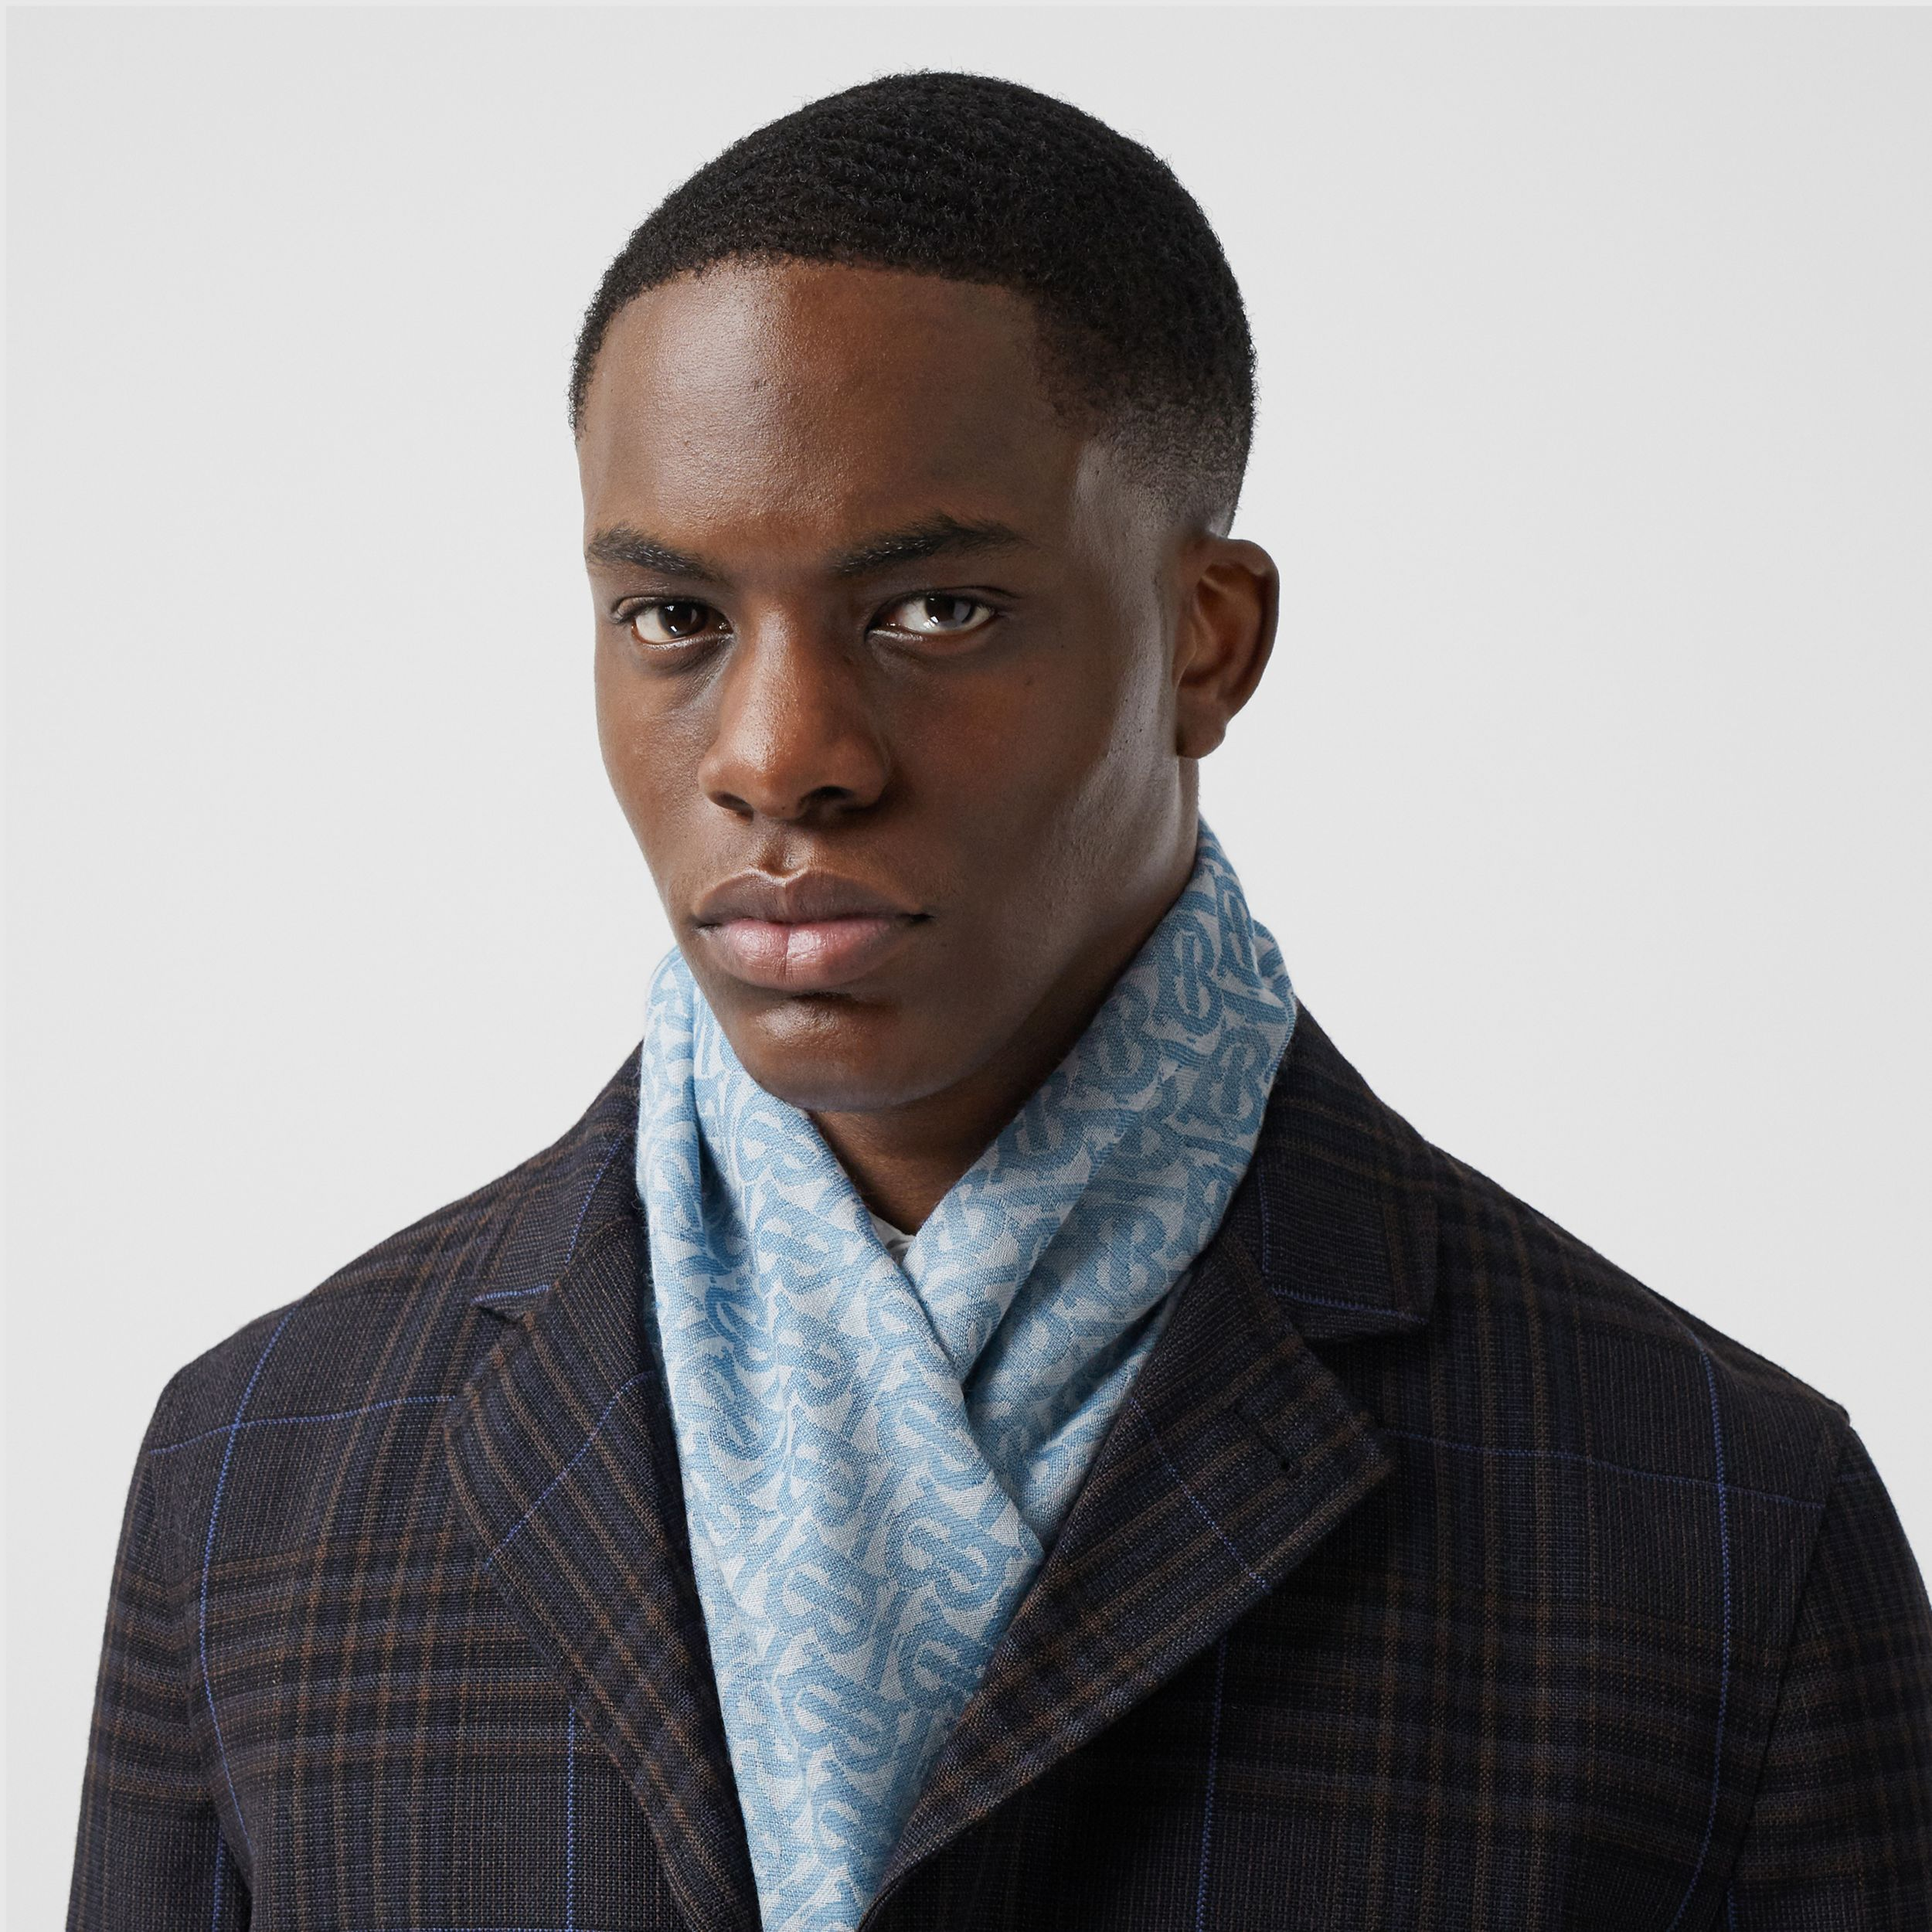 Monogram Wool Silk Jacquard Scarf in Denim Blue | Burberry - 3